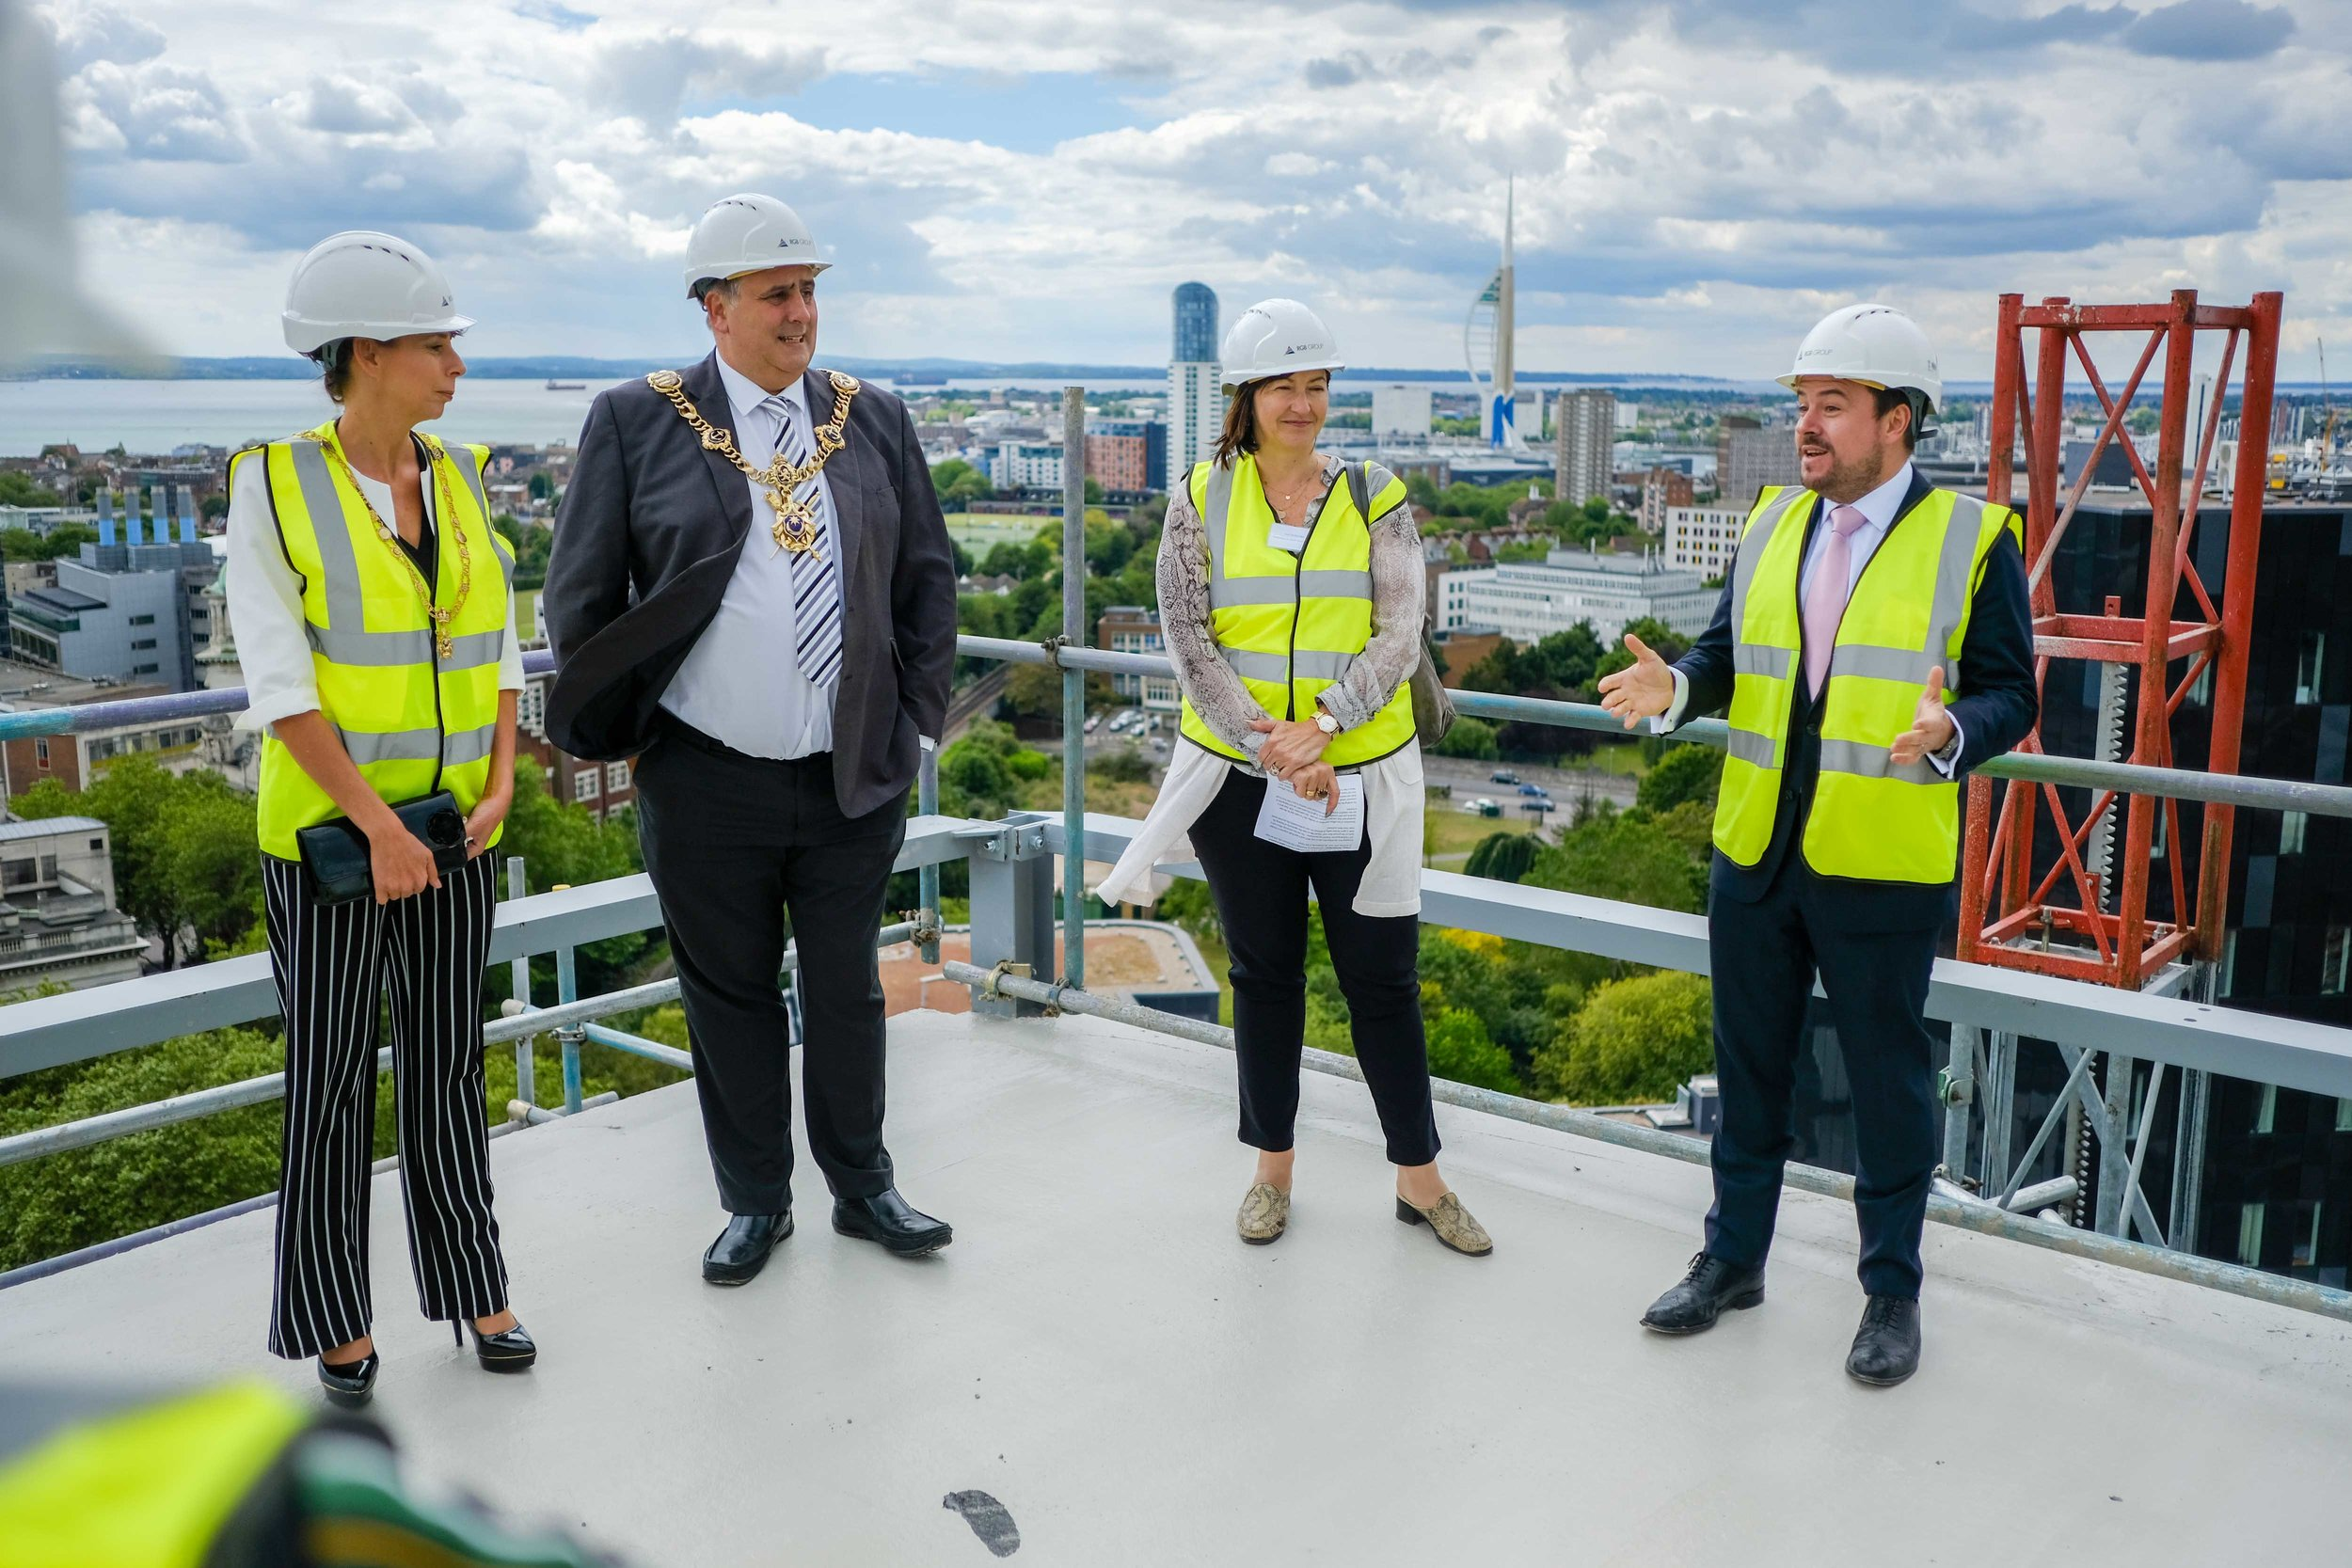 Stanhope House Topping Out 28.05.19 - Solent Sky Services--42.JPG